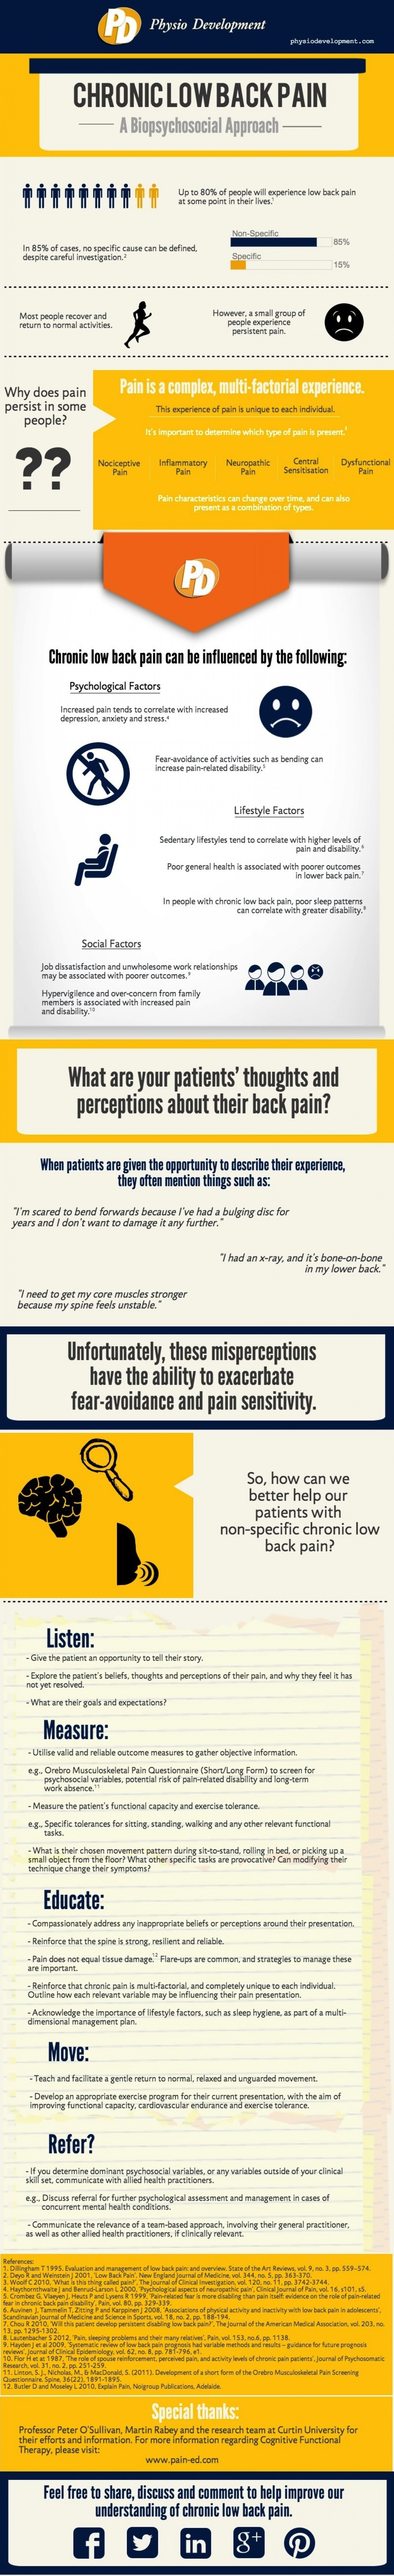 Chronic Low Back Pain: Physiotherapy Infographic